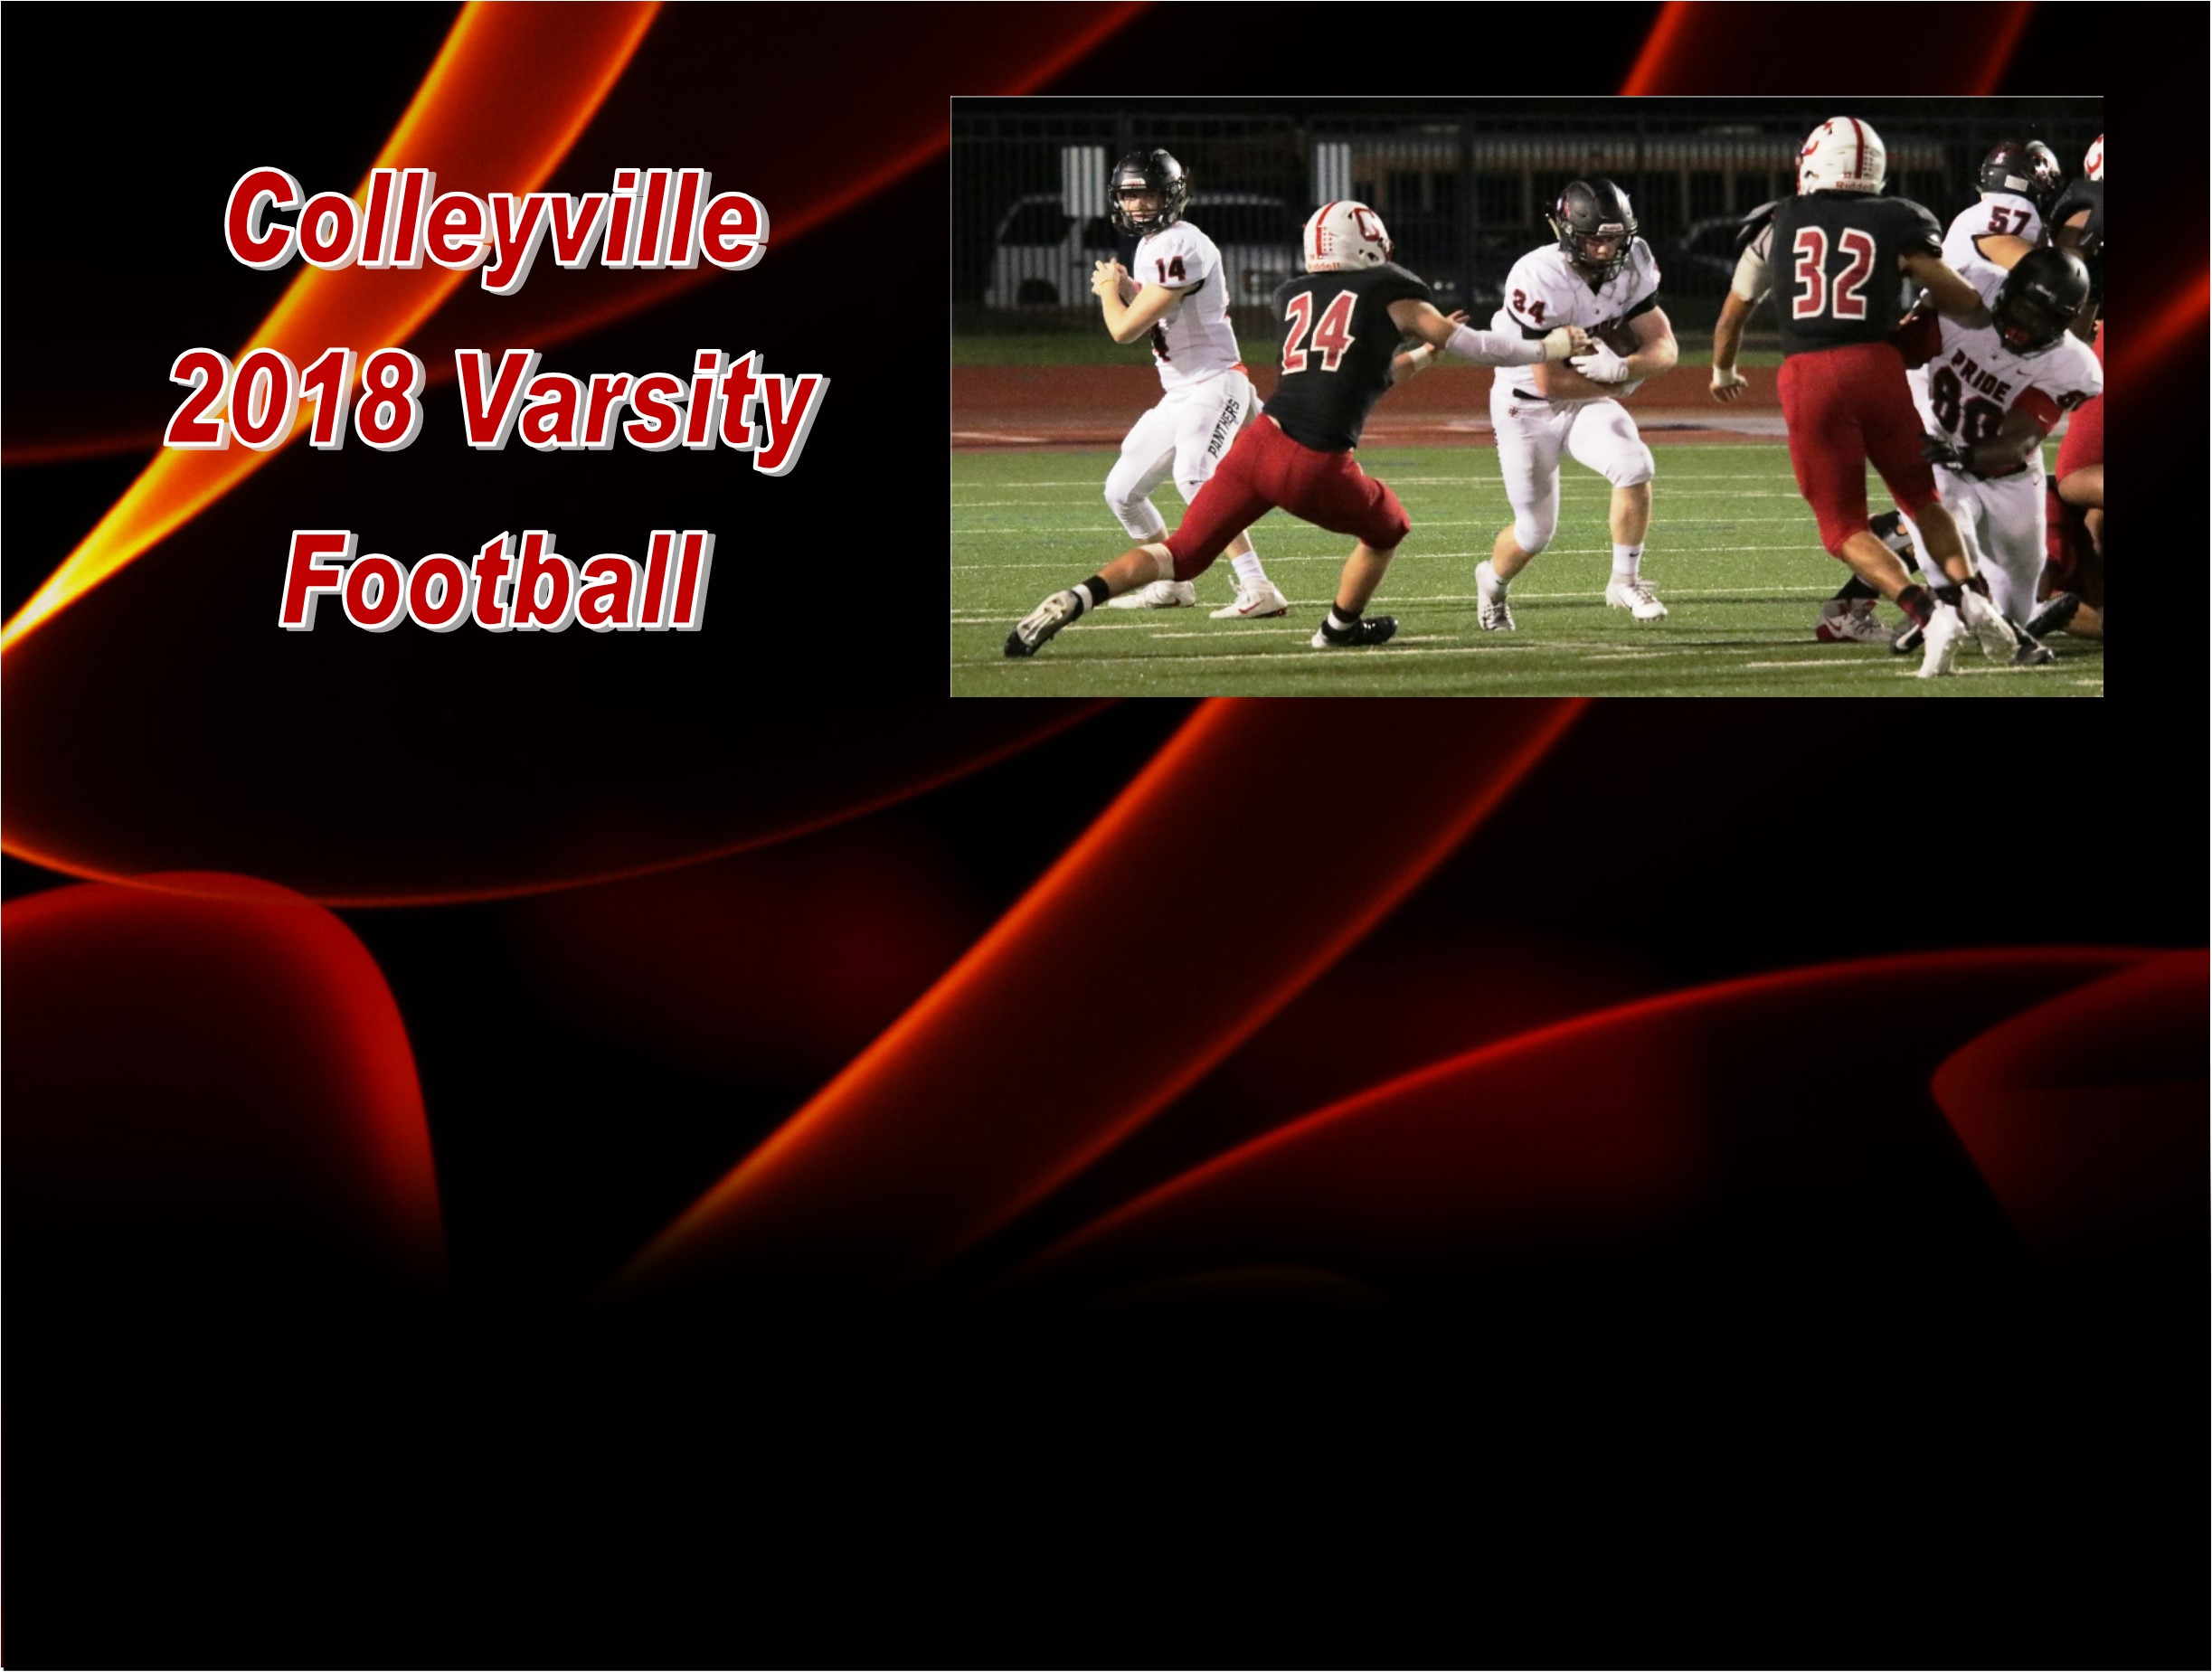 Colleyville Panthers Overpowers Carrollton Creekview Mustangs 49-21